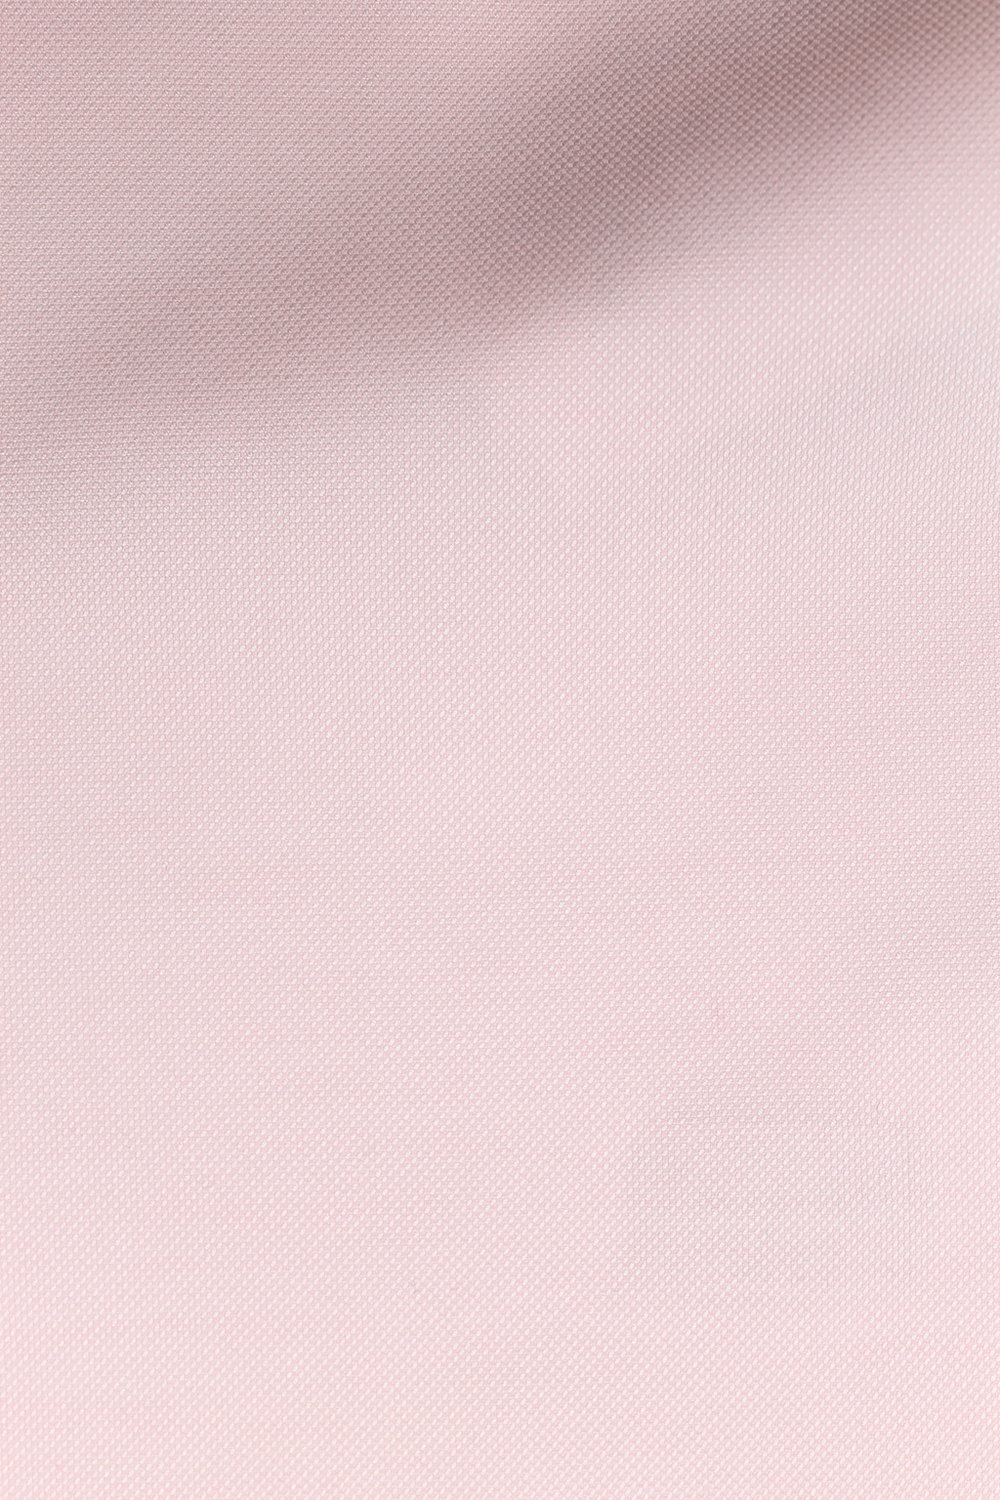 6703 Tactical Pink Oxford.JPG